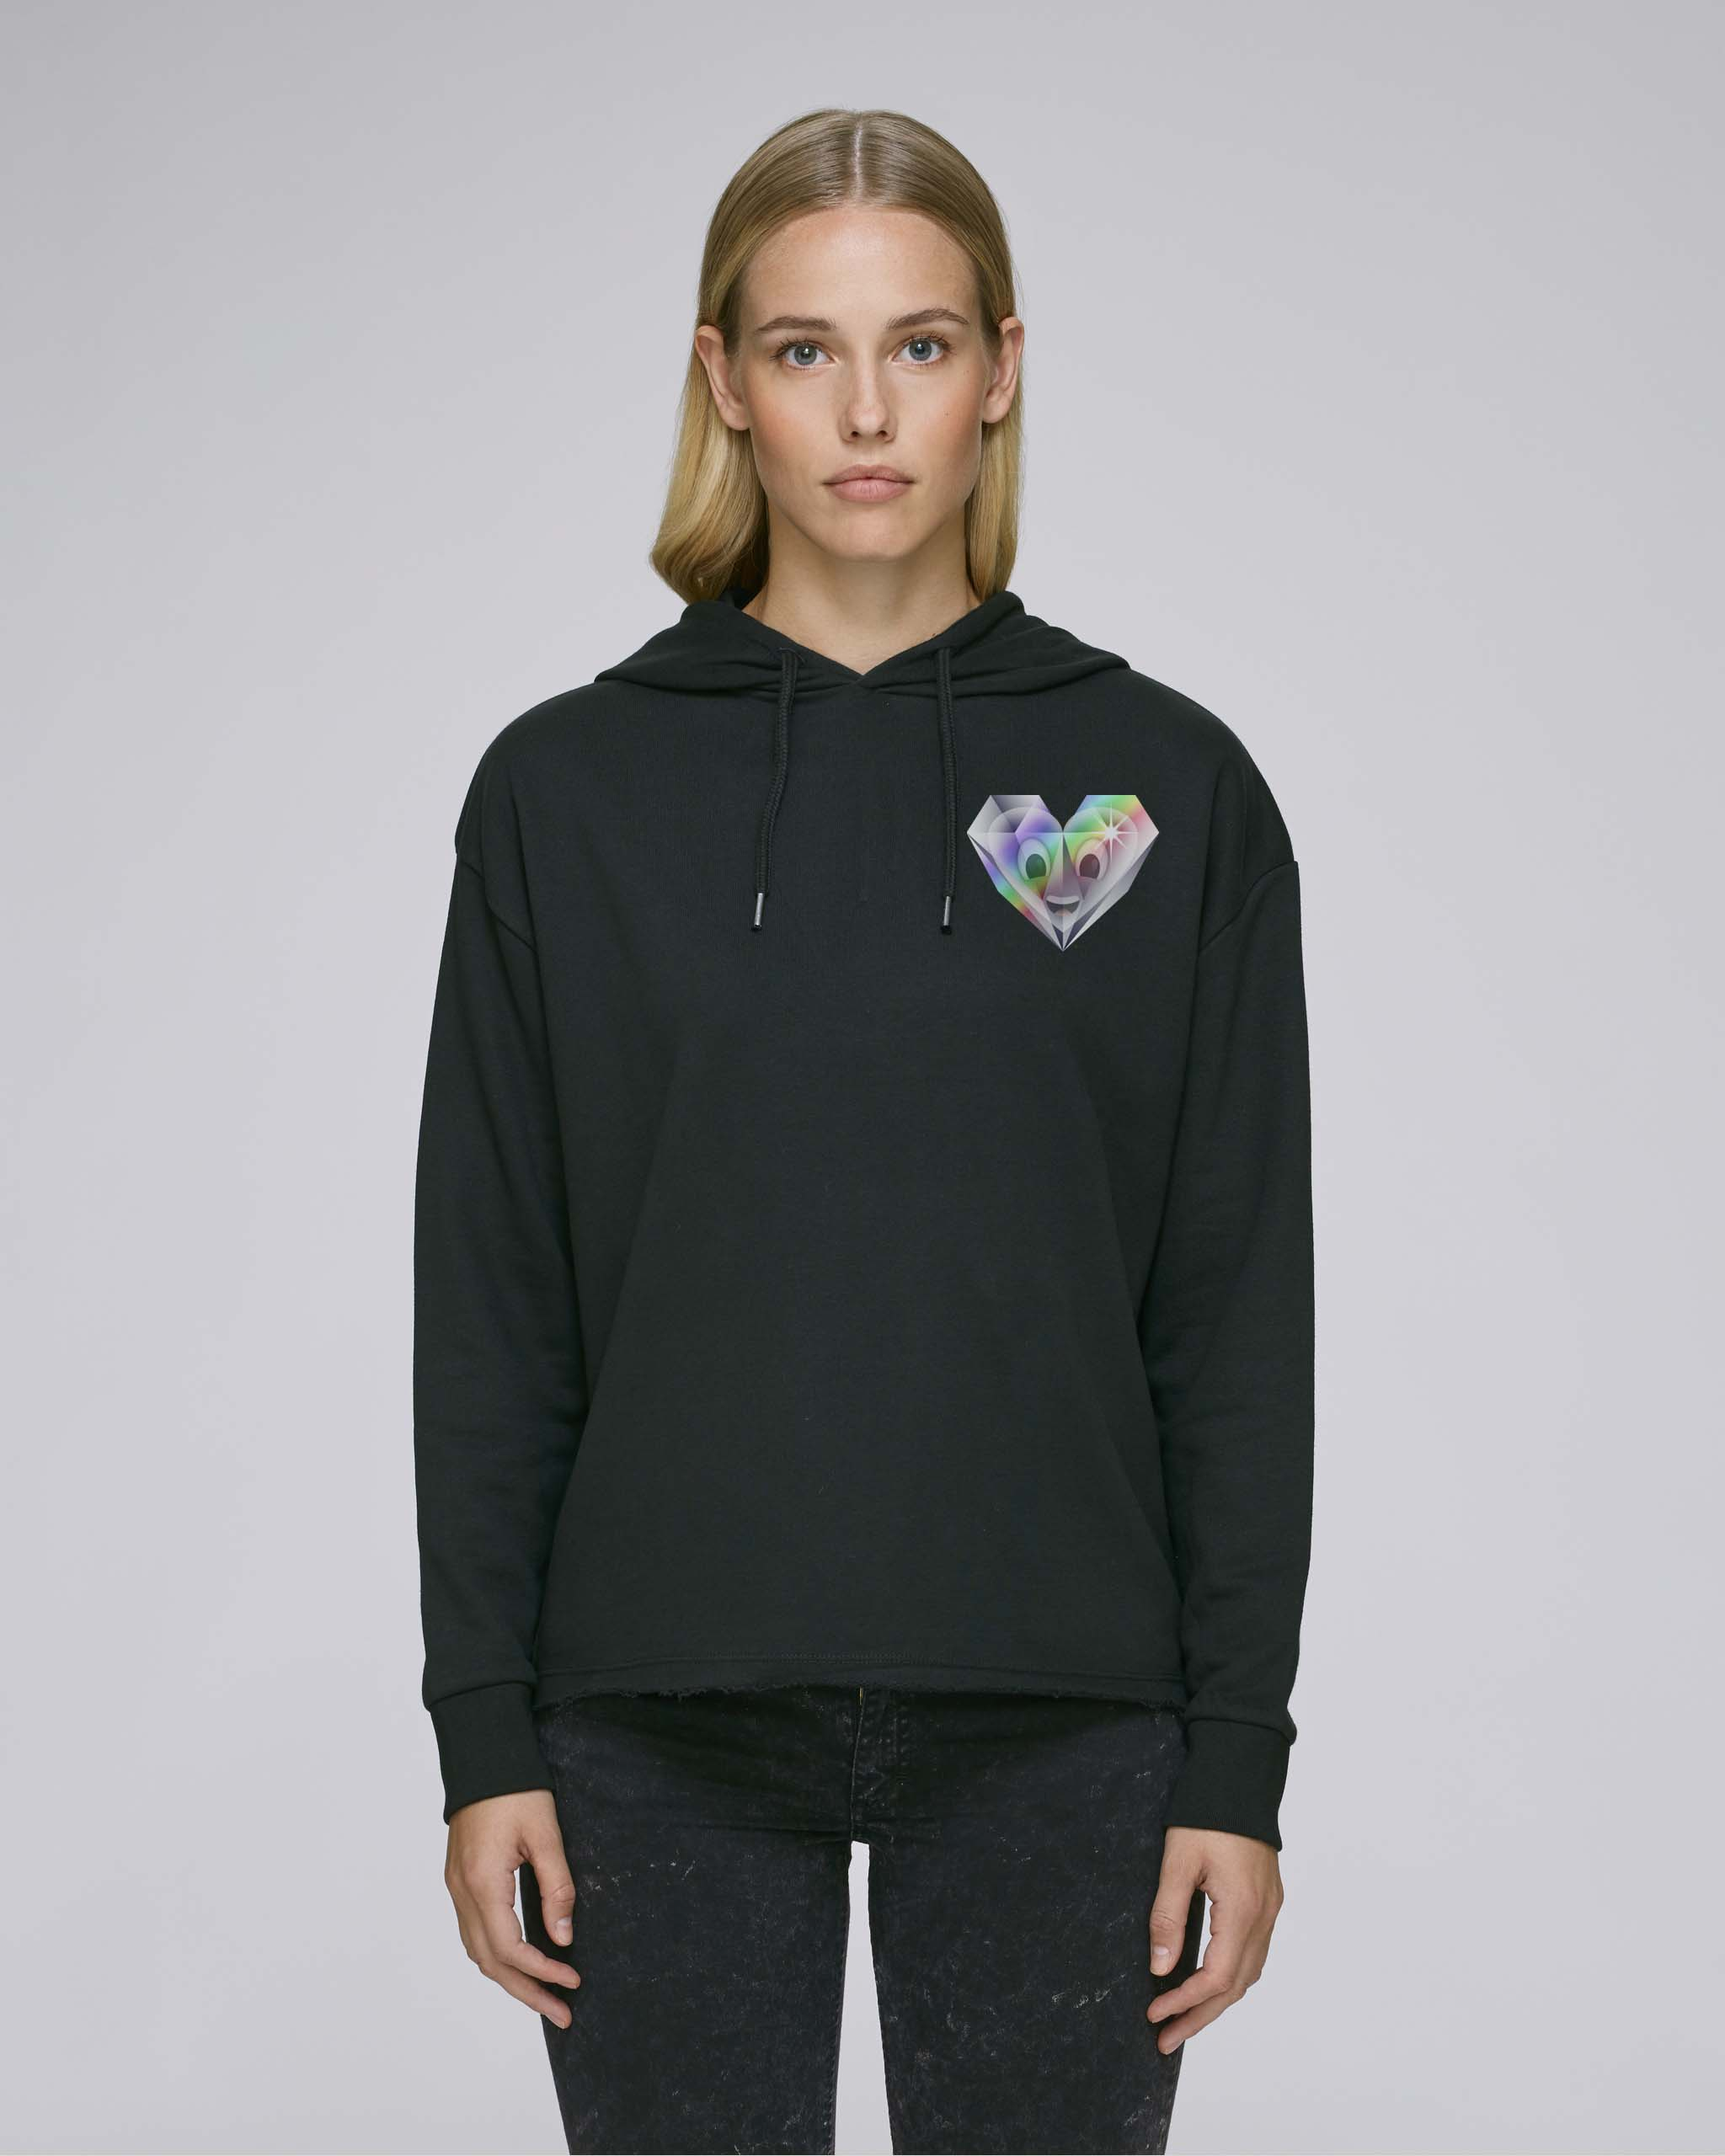 Sweat-Shirt Bio noir Femme - Diamond sweat